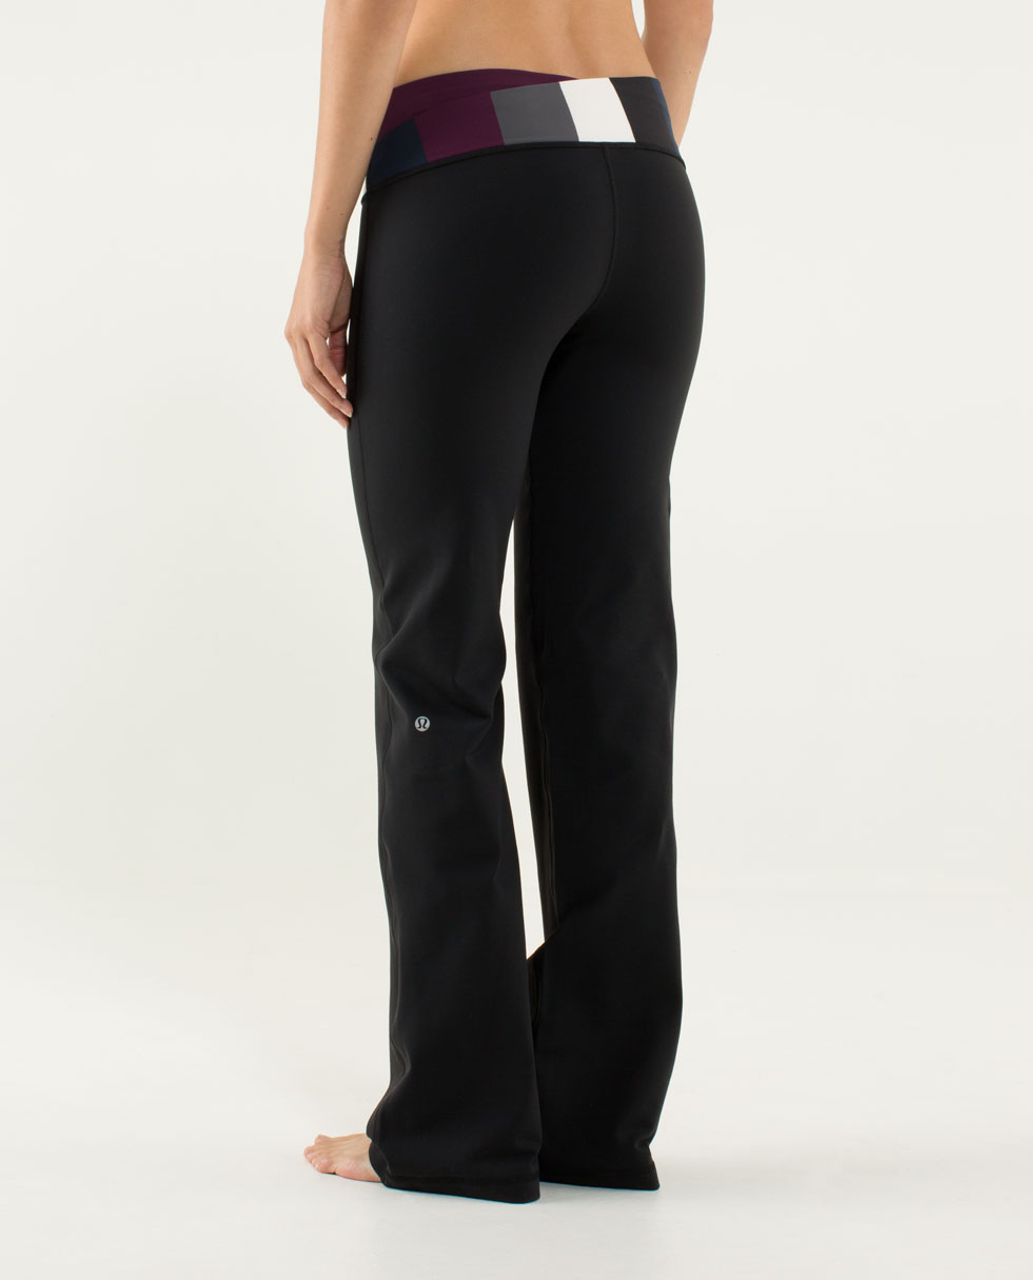 Lululemon Astro Pant (Regular) - Black / Plum / Pow Stripe Angel Wing